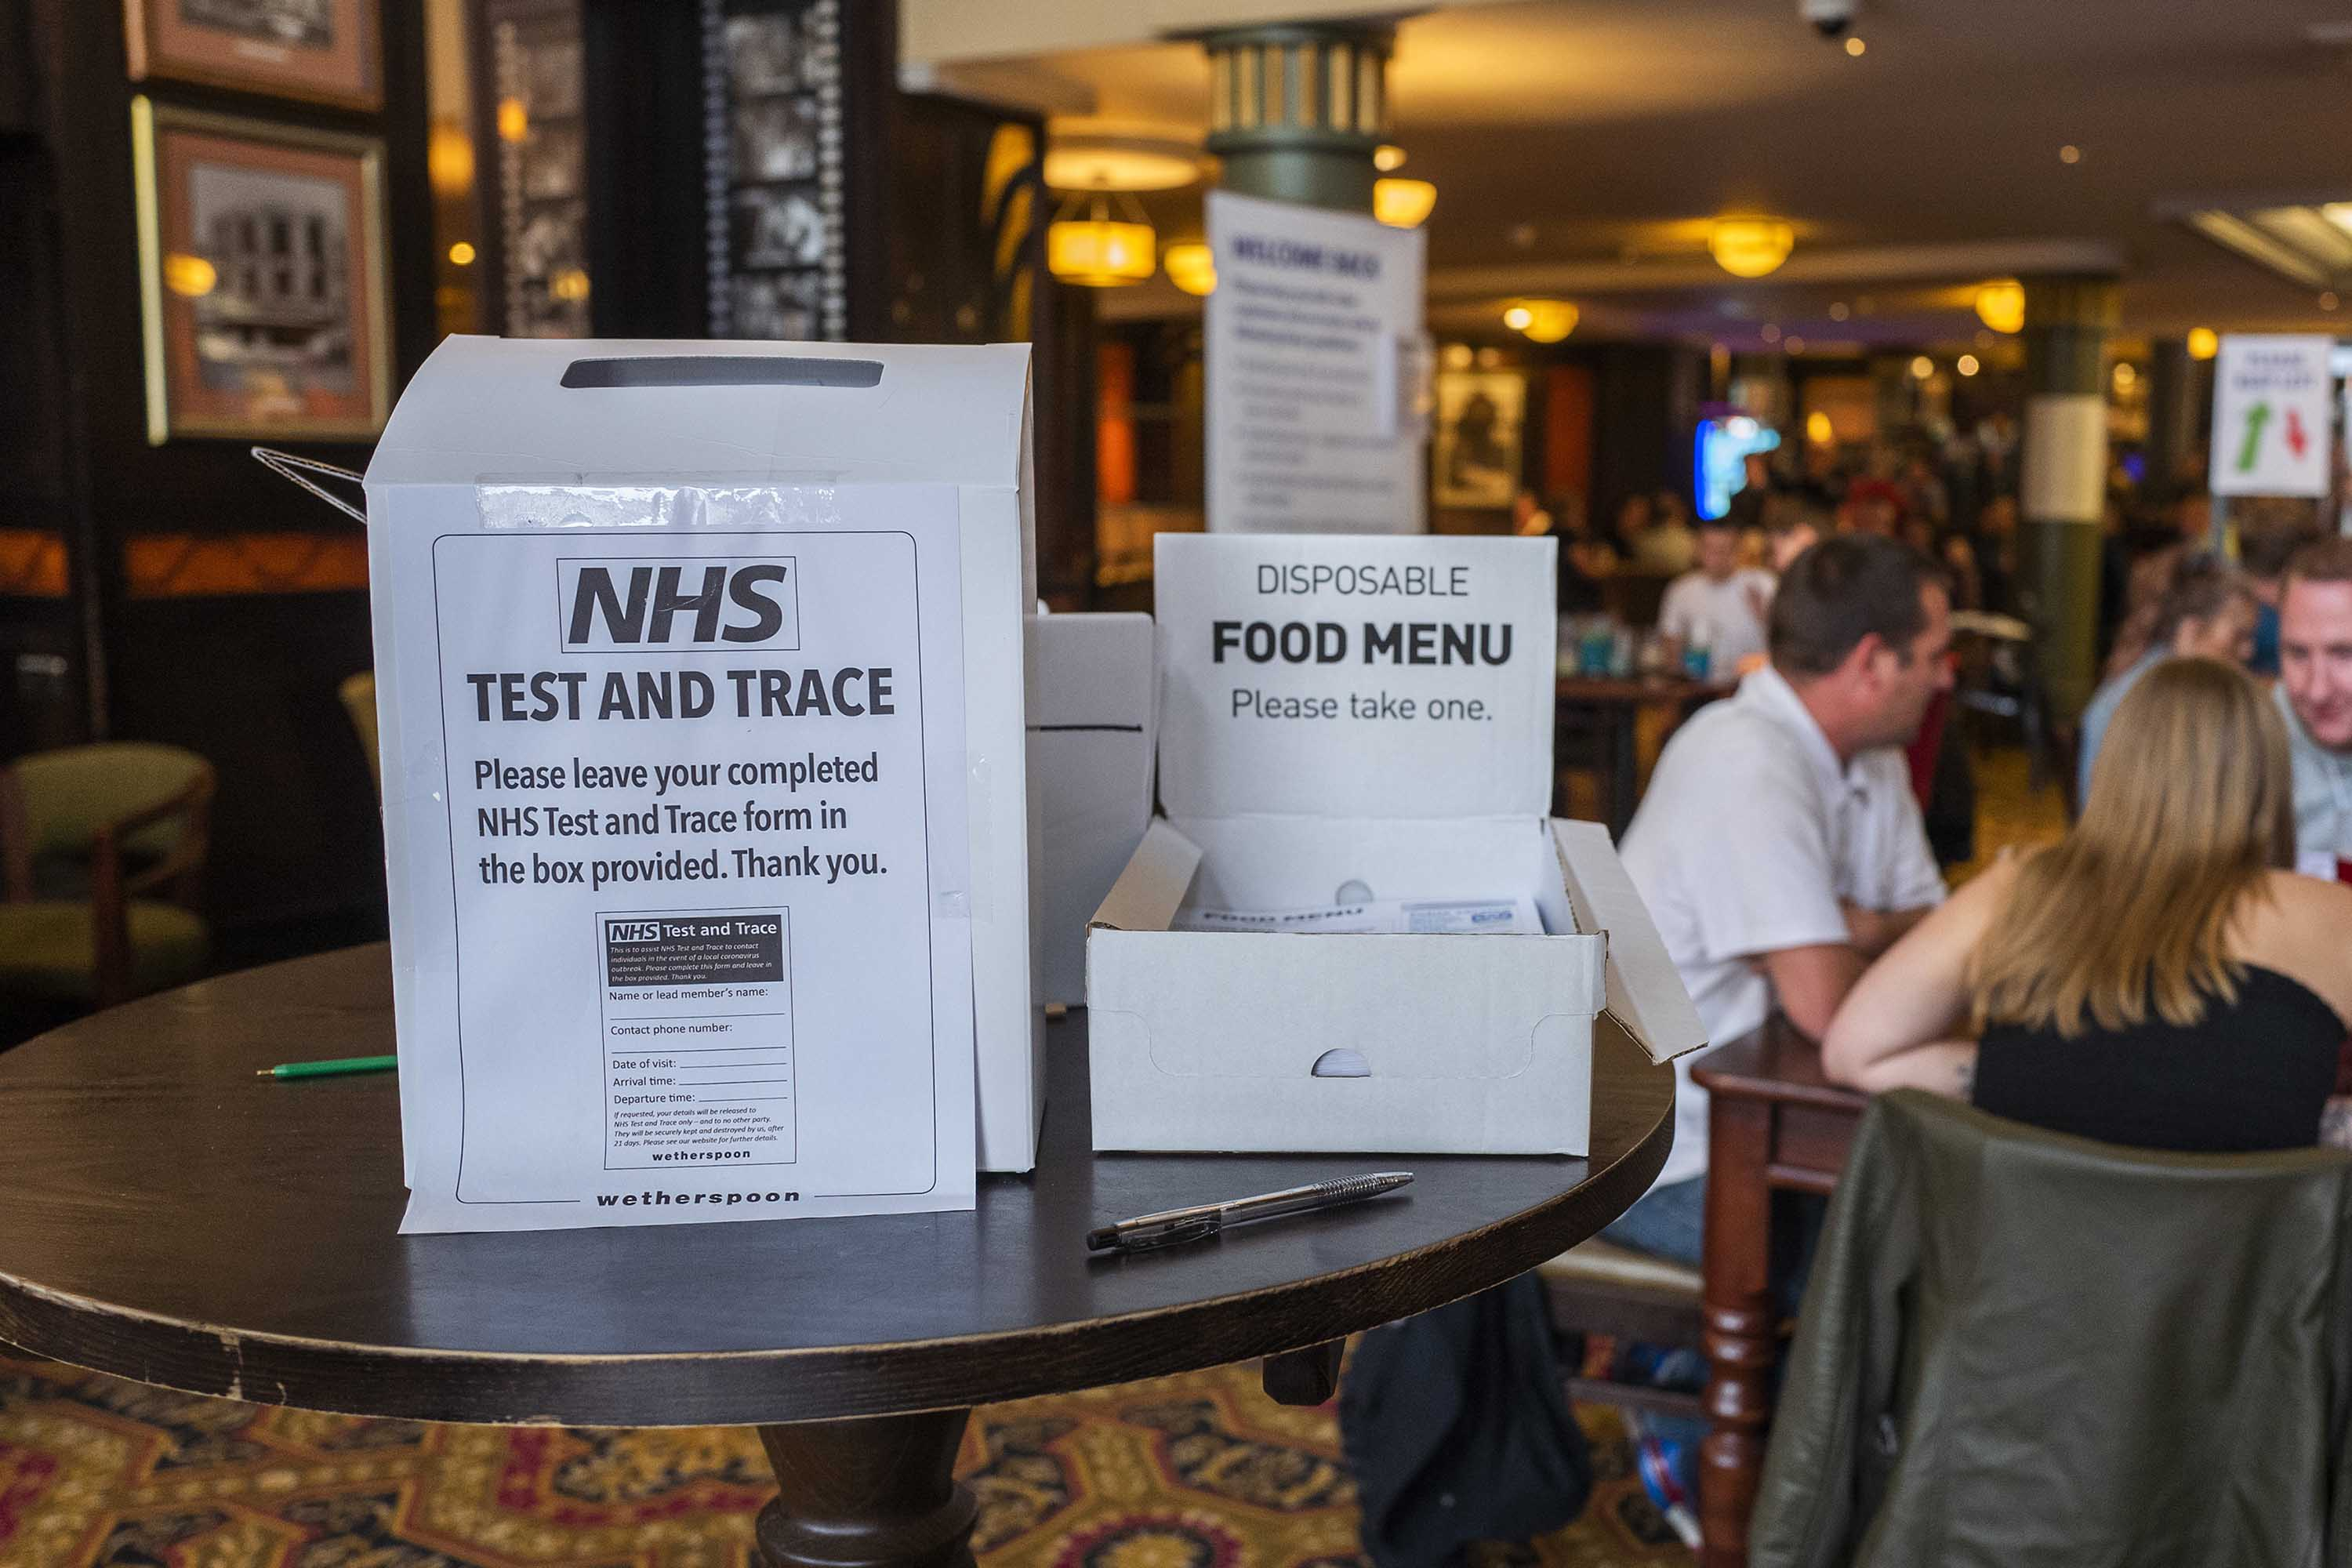 Britain's National Health Service Test and Trace form is displayed at the entrance of a pub in Rochdale, England, on July 4.